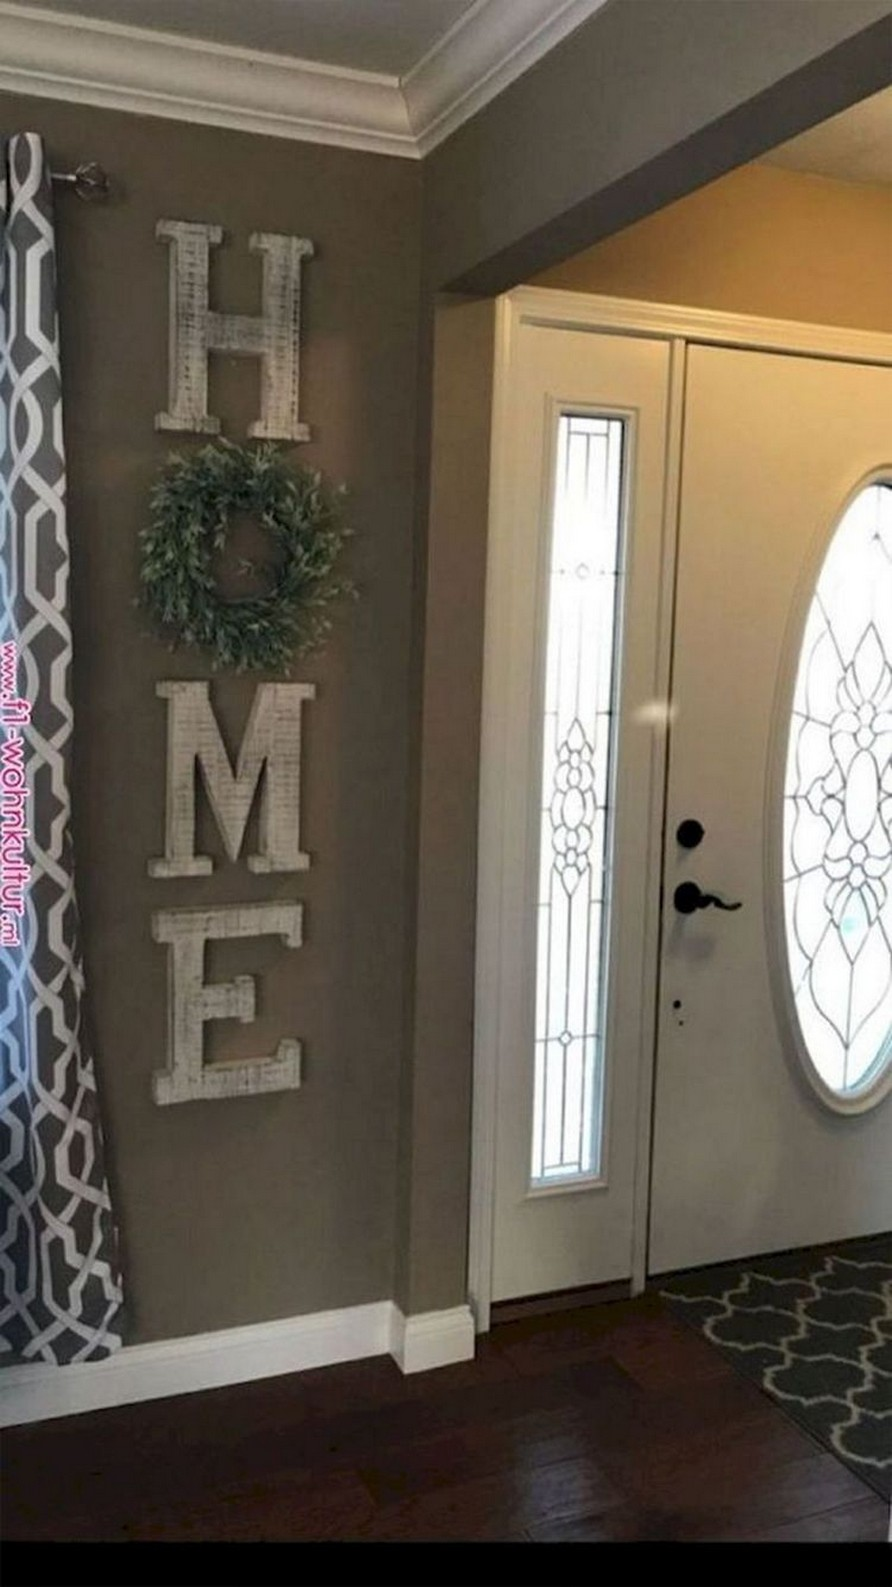 67 Rustic Home Decorating Ideas In 2020 Home Decor 18